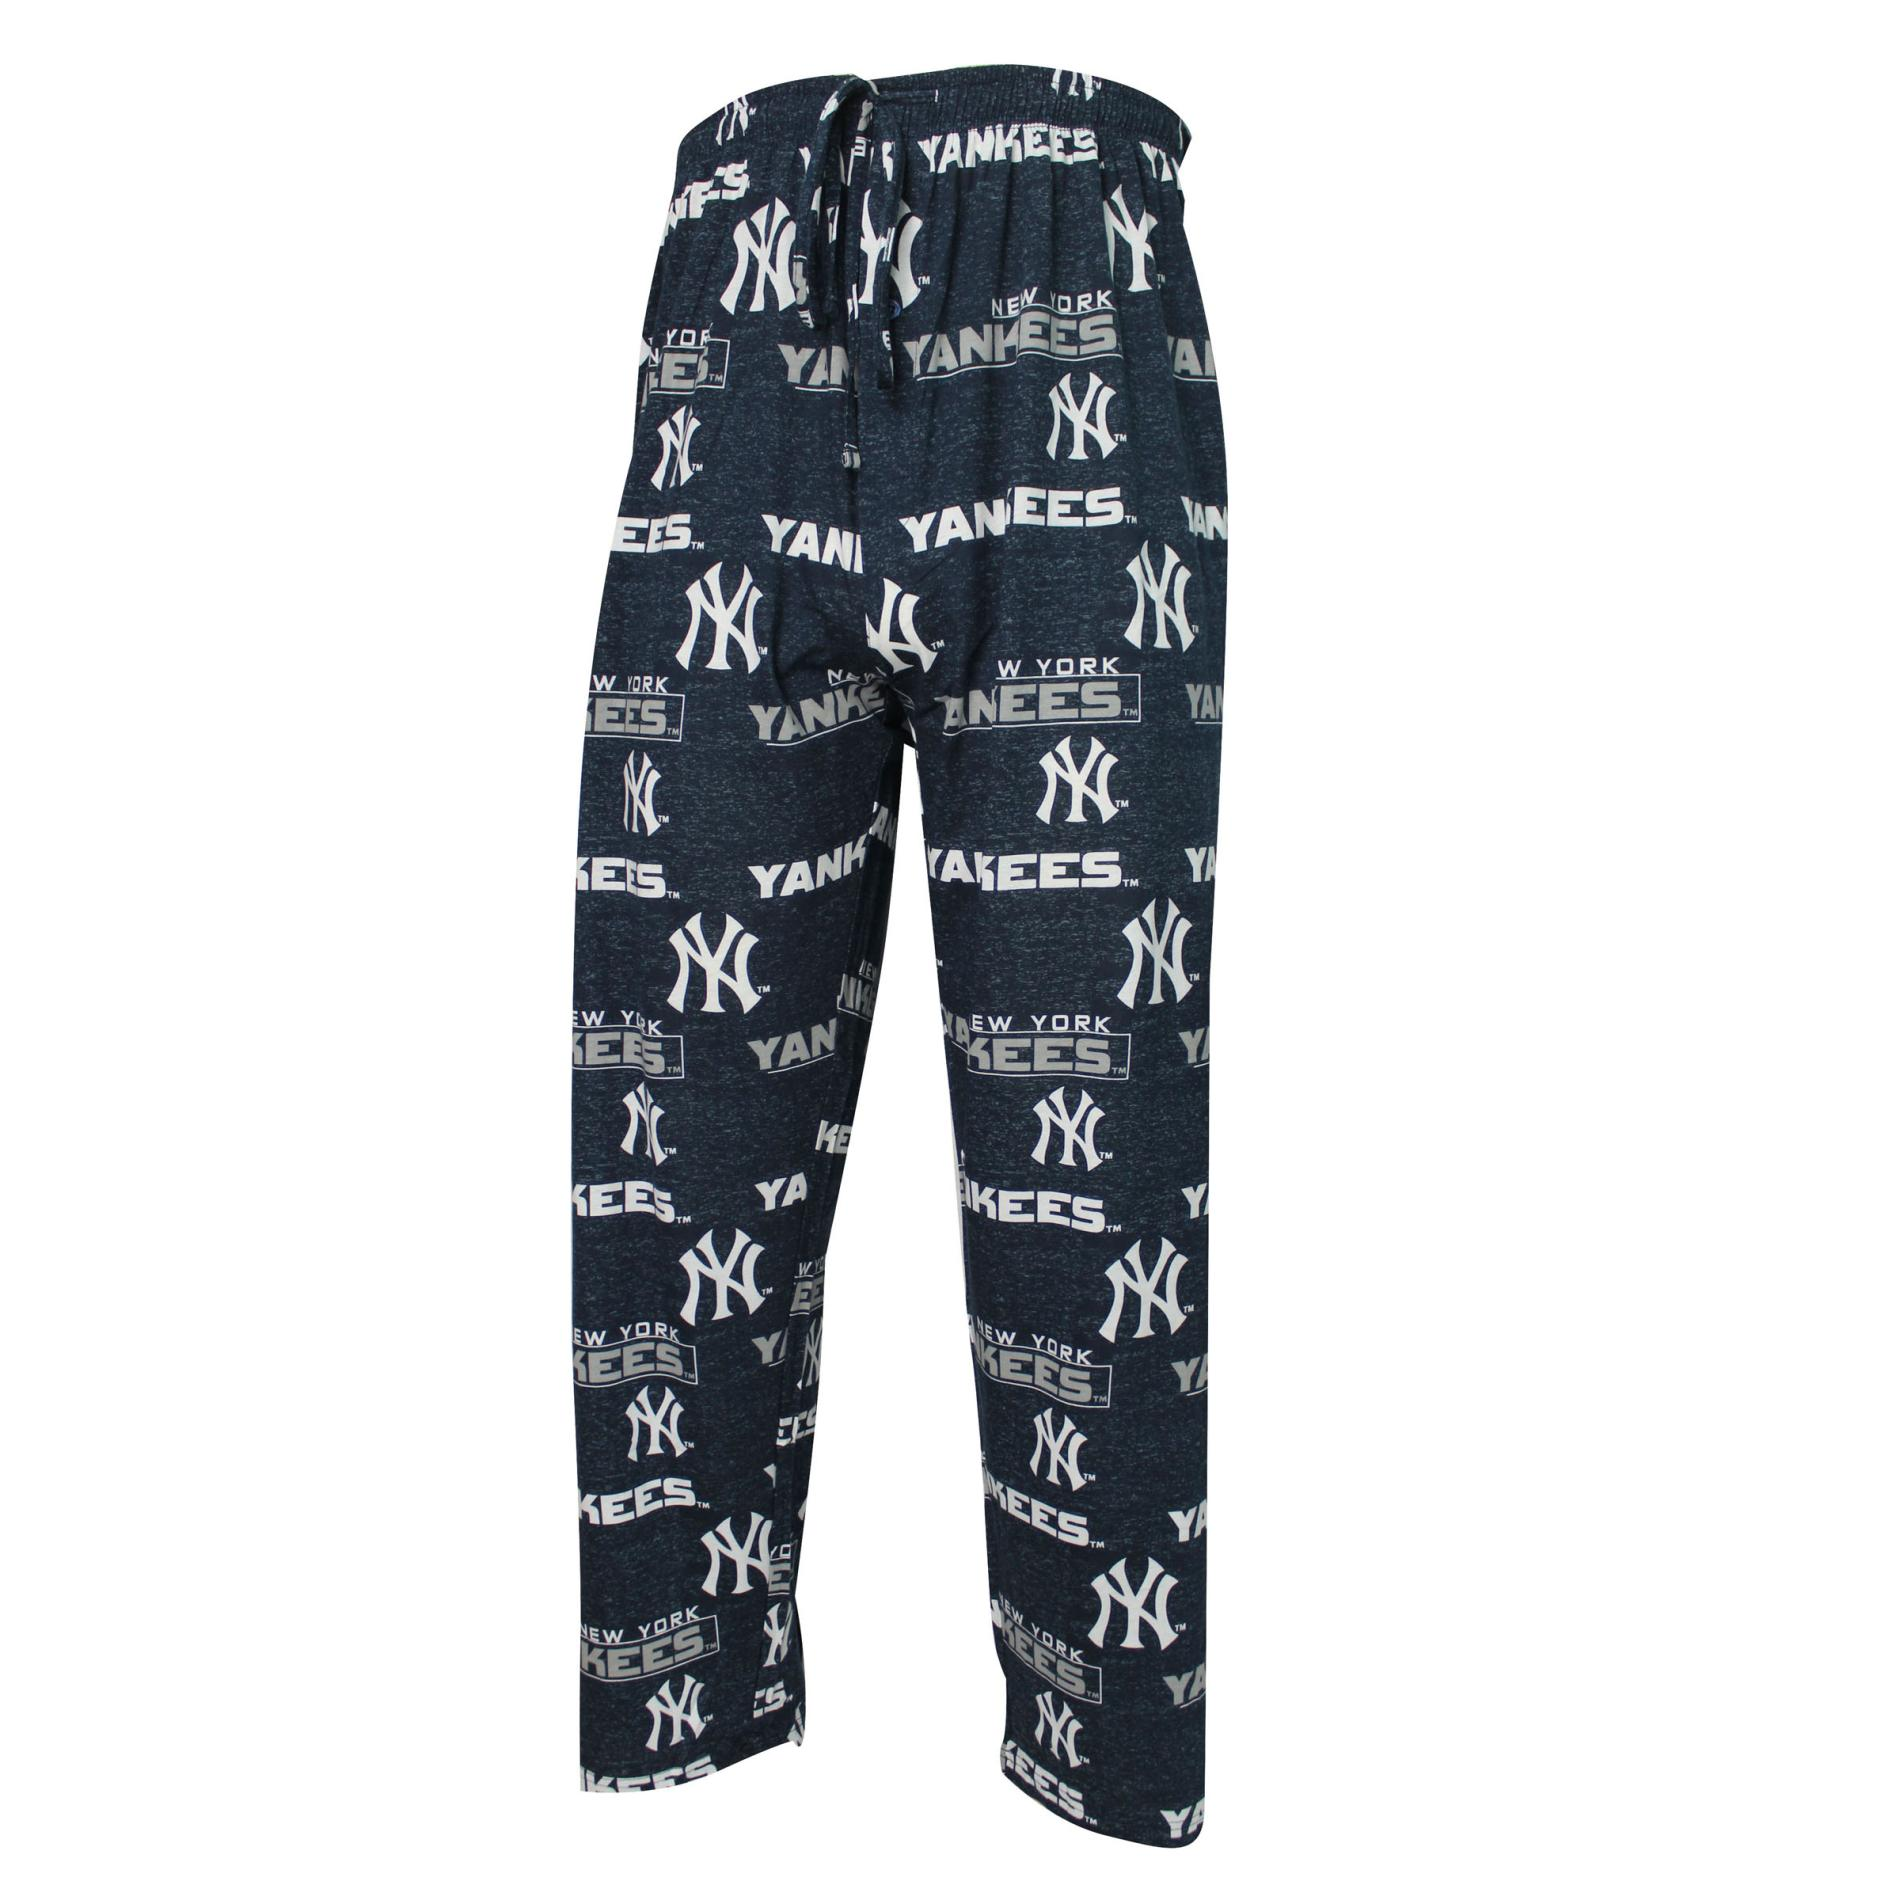 Mlb Men' Pajama Pants - York Yankees